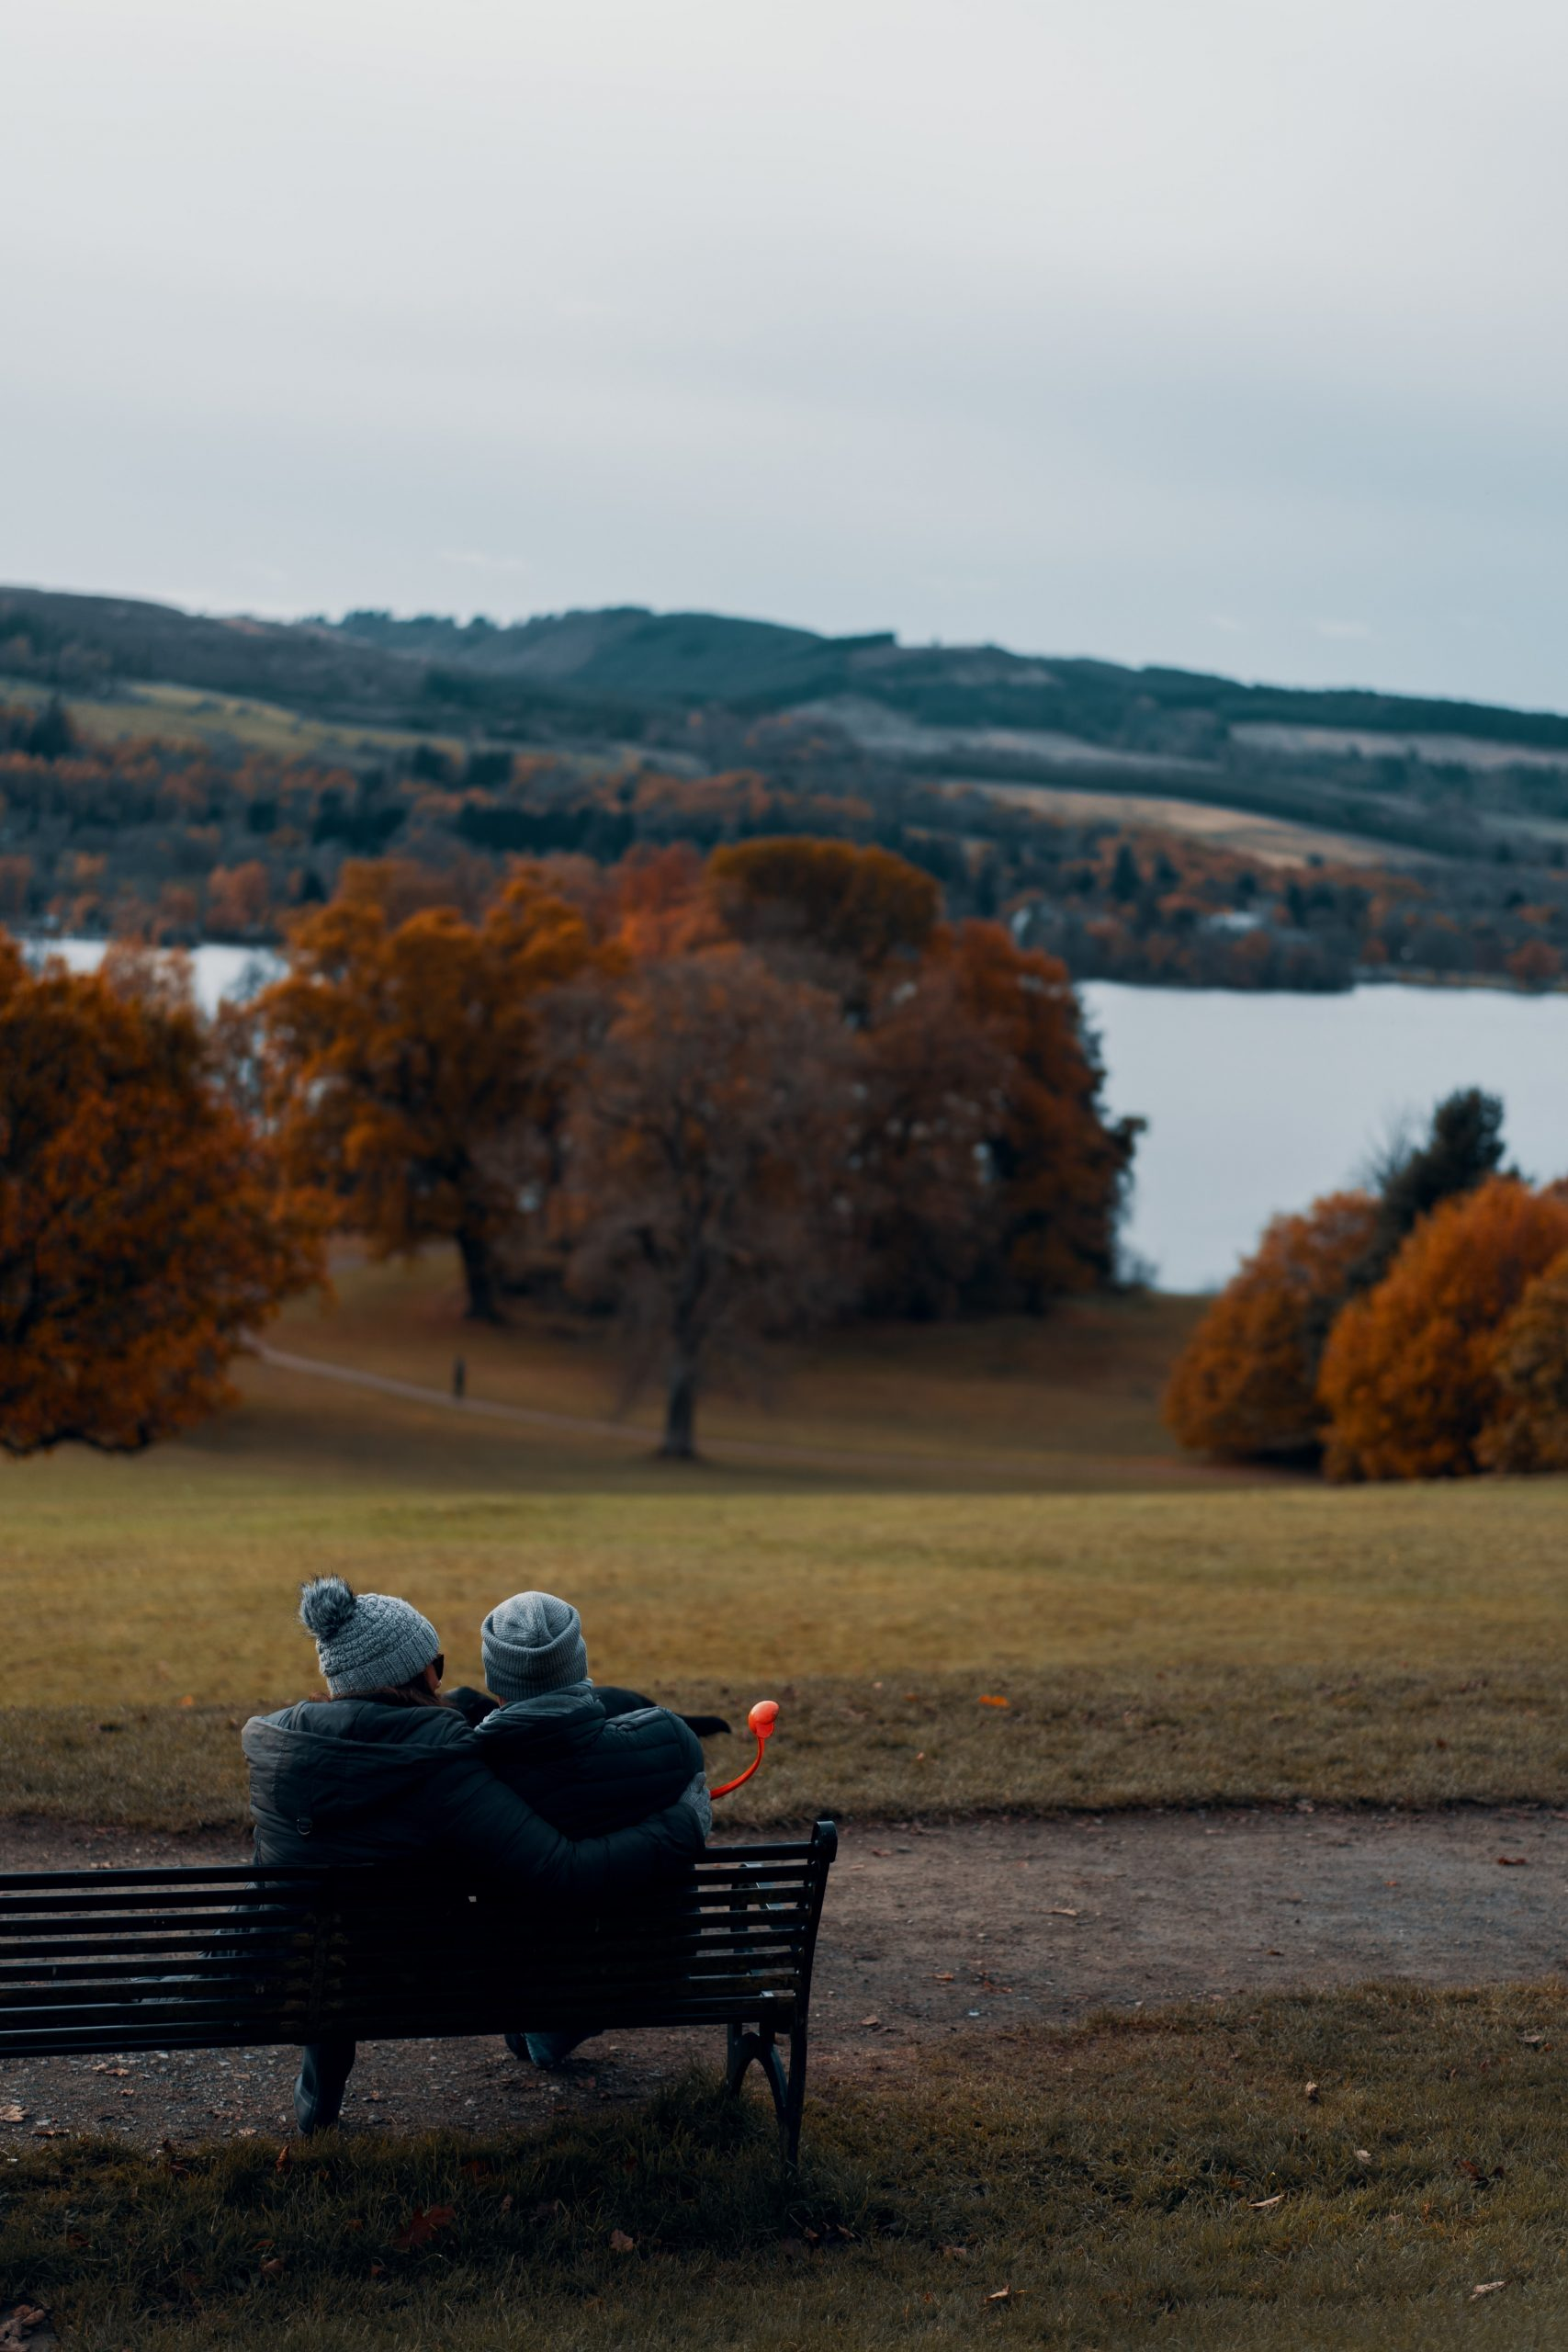 A couple sitting on the bench and enjoying the view on their mission to explore Auburn Hills.